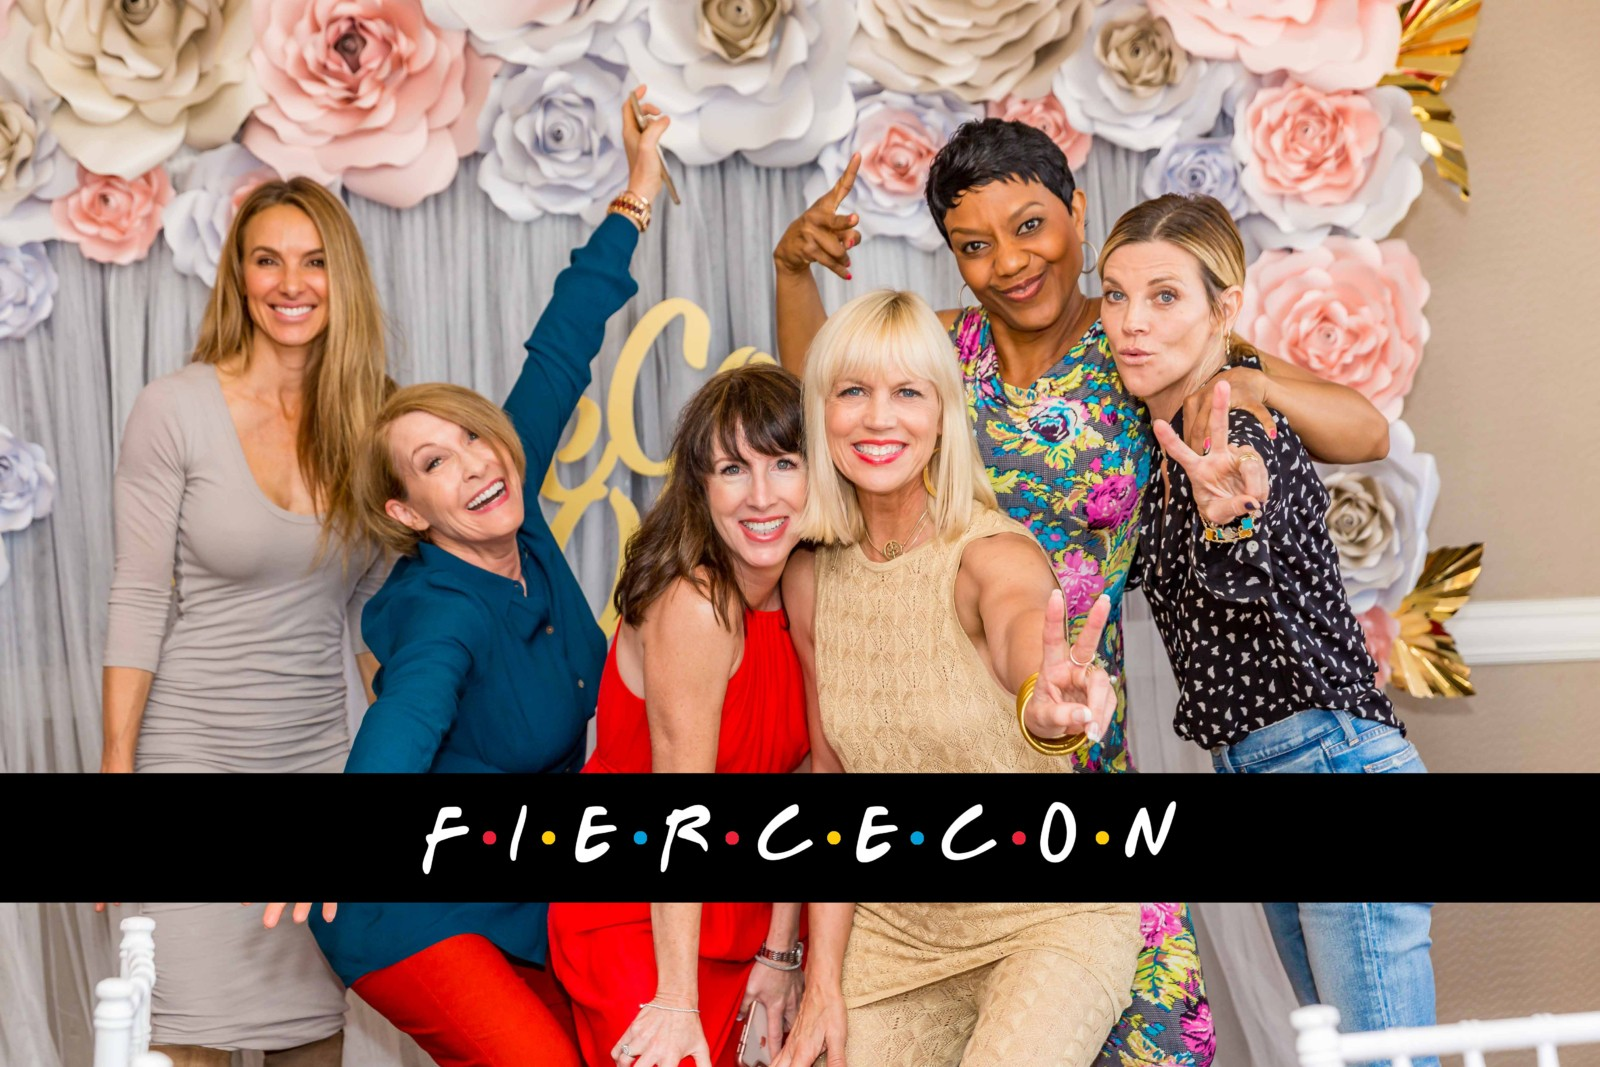 Celebrating FierceCon with Friends